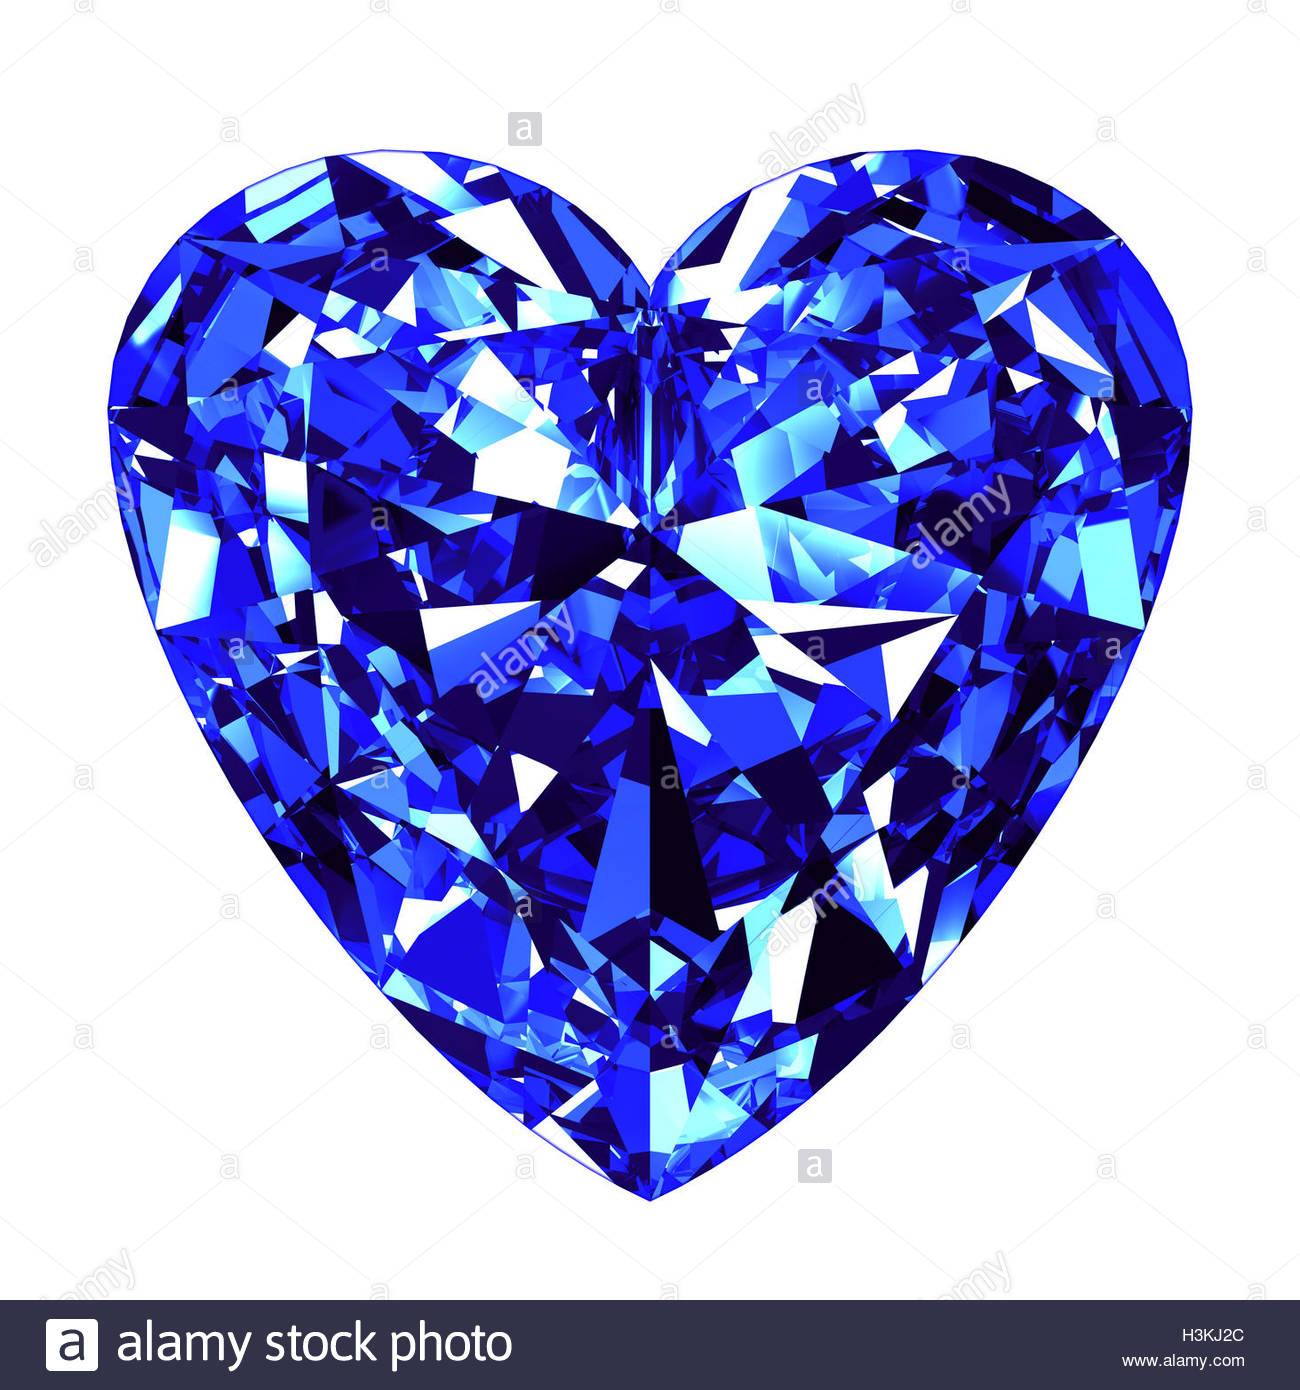 Sapphire Heart Cut Over White Background. 3d Illustration Stock.